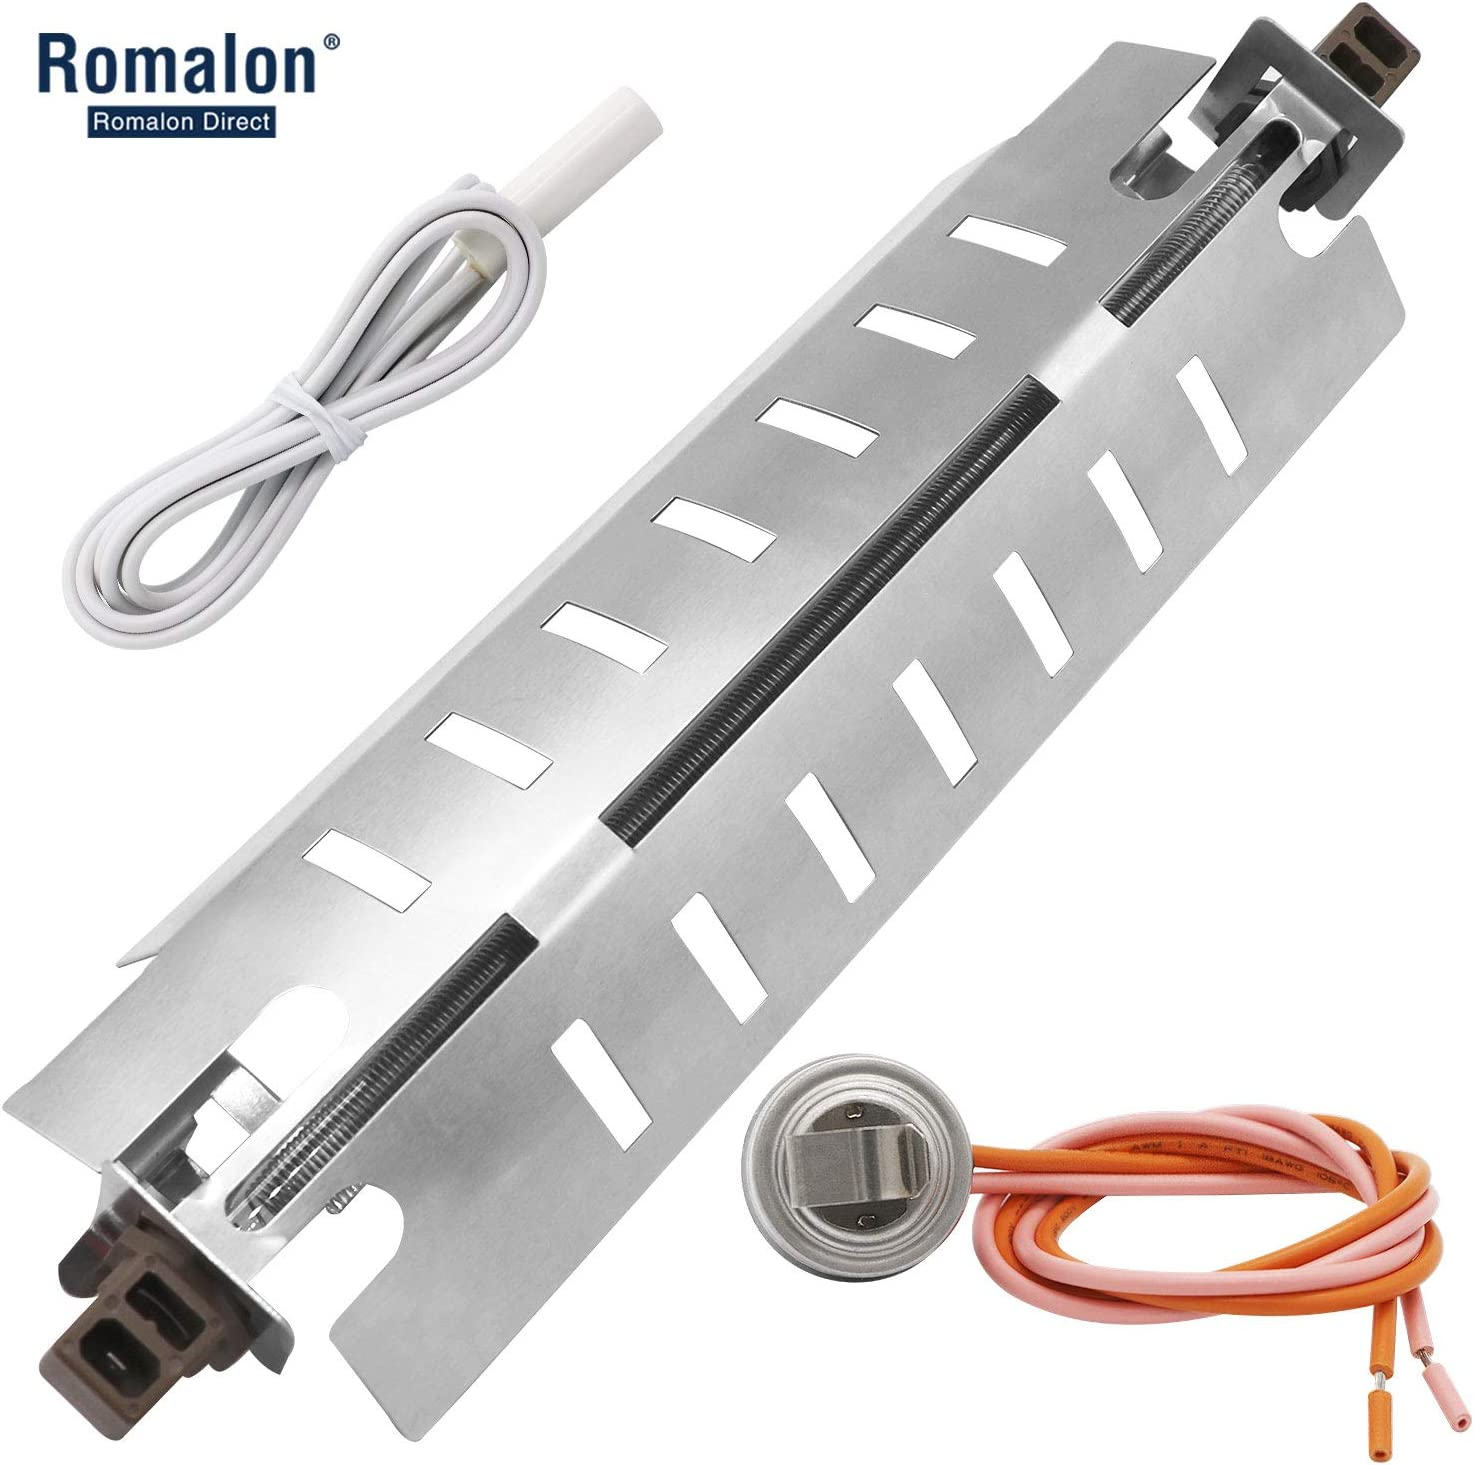 WR51X10055 Refrigerator Defrost Heater&WR55X10025 Temperature Sensor&WR50X10068 Defrost Thermostat Kit Compatible With General Electric&Hotpoint By Romalon